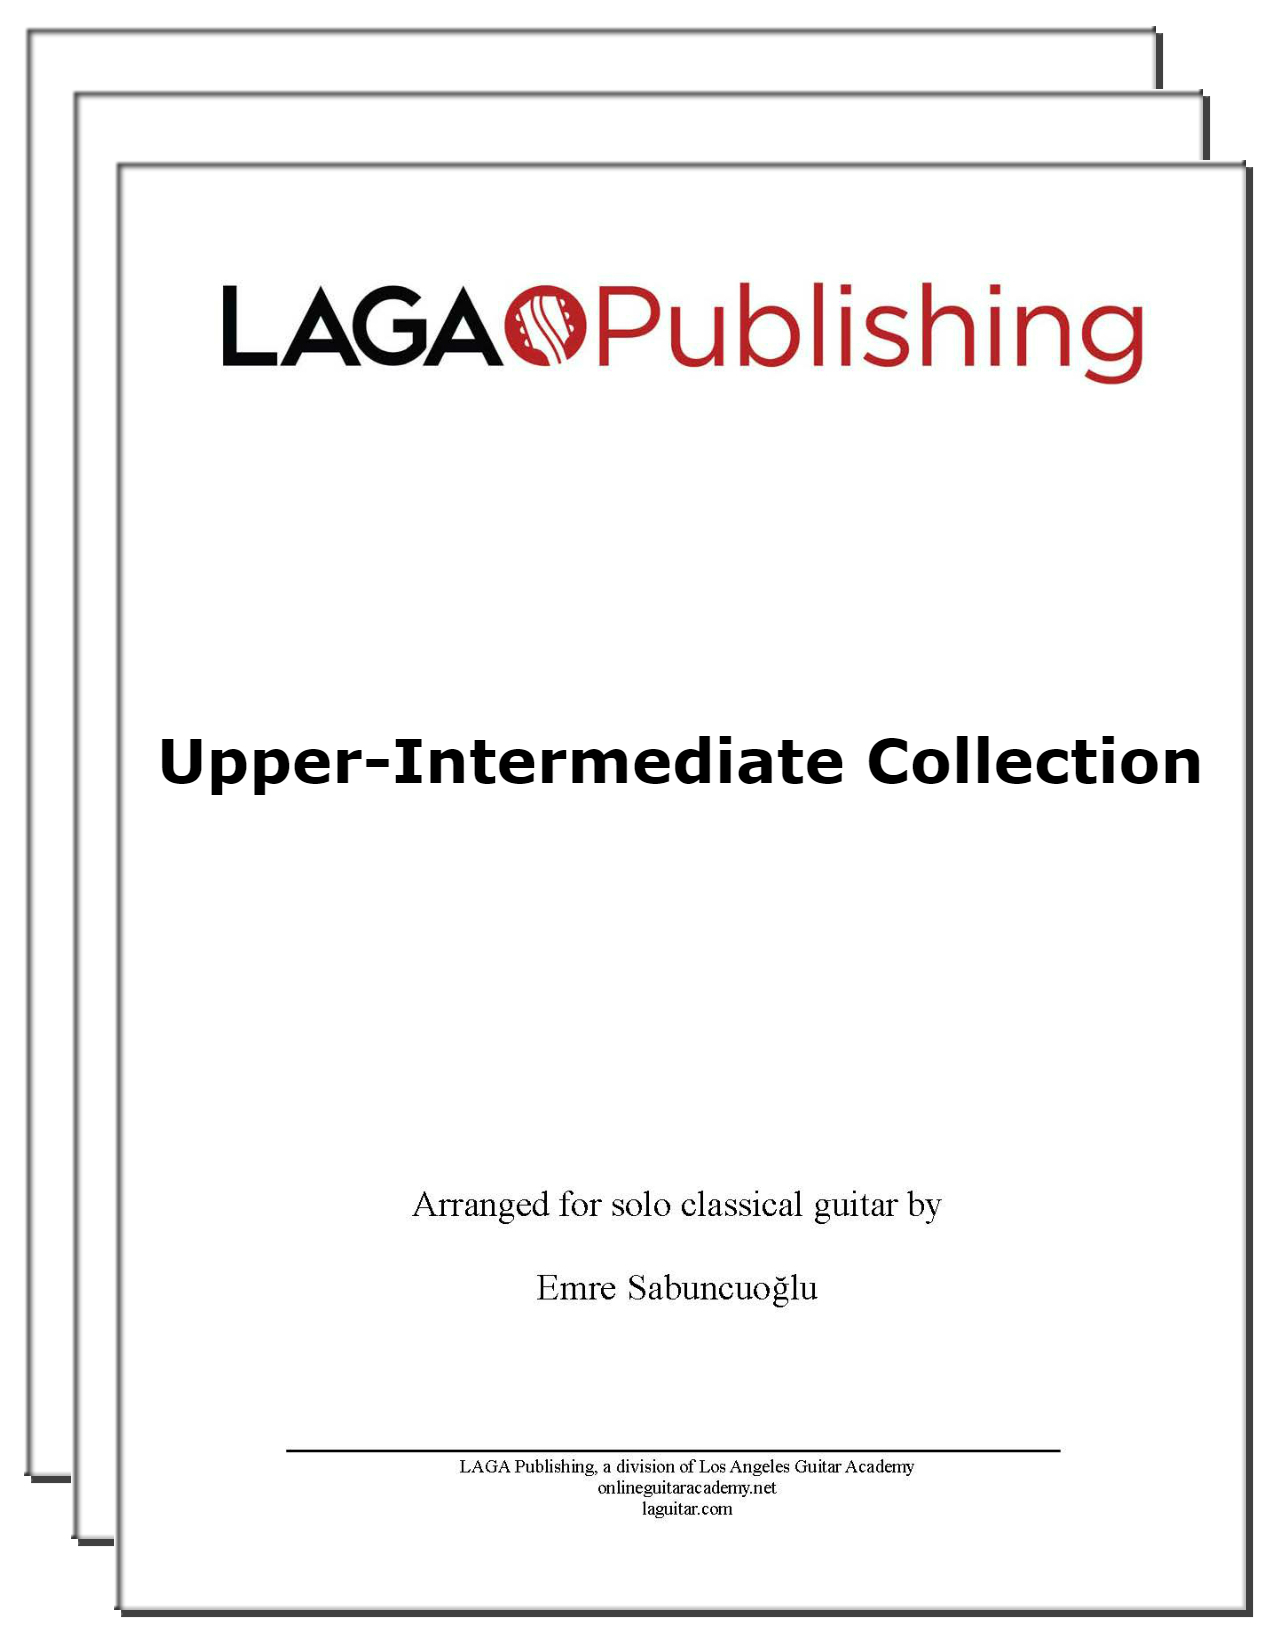 LAGA-Publishing-Upper-Intermediate Collection